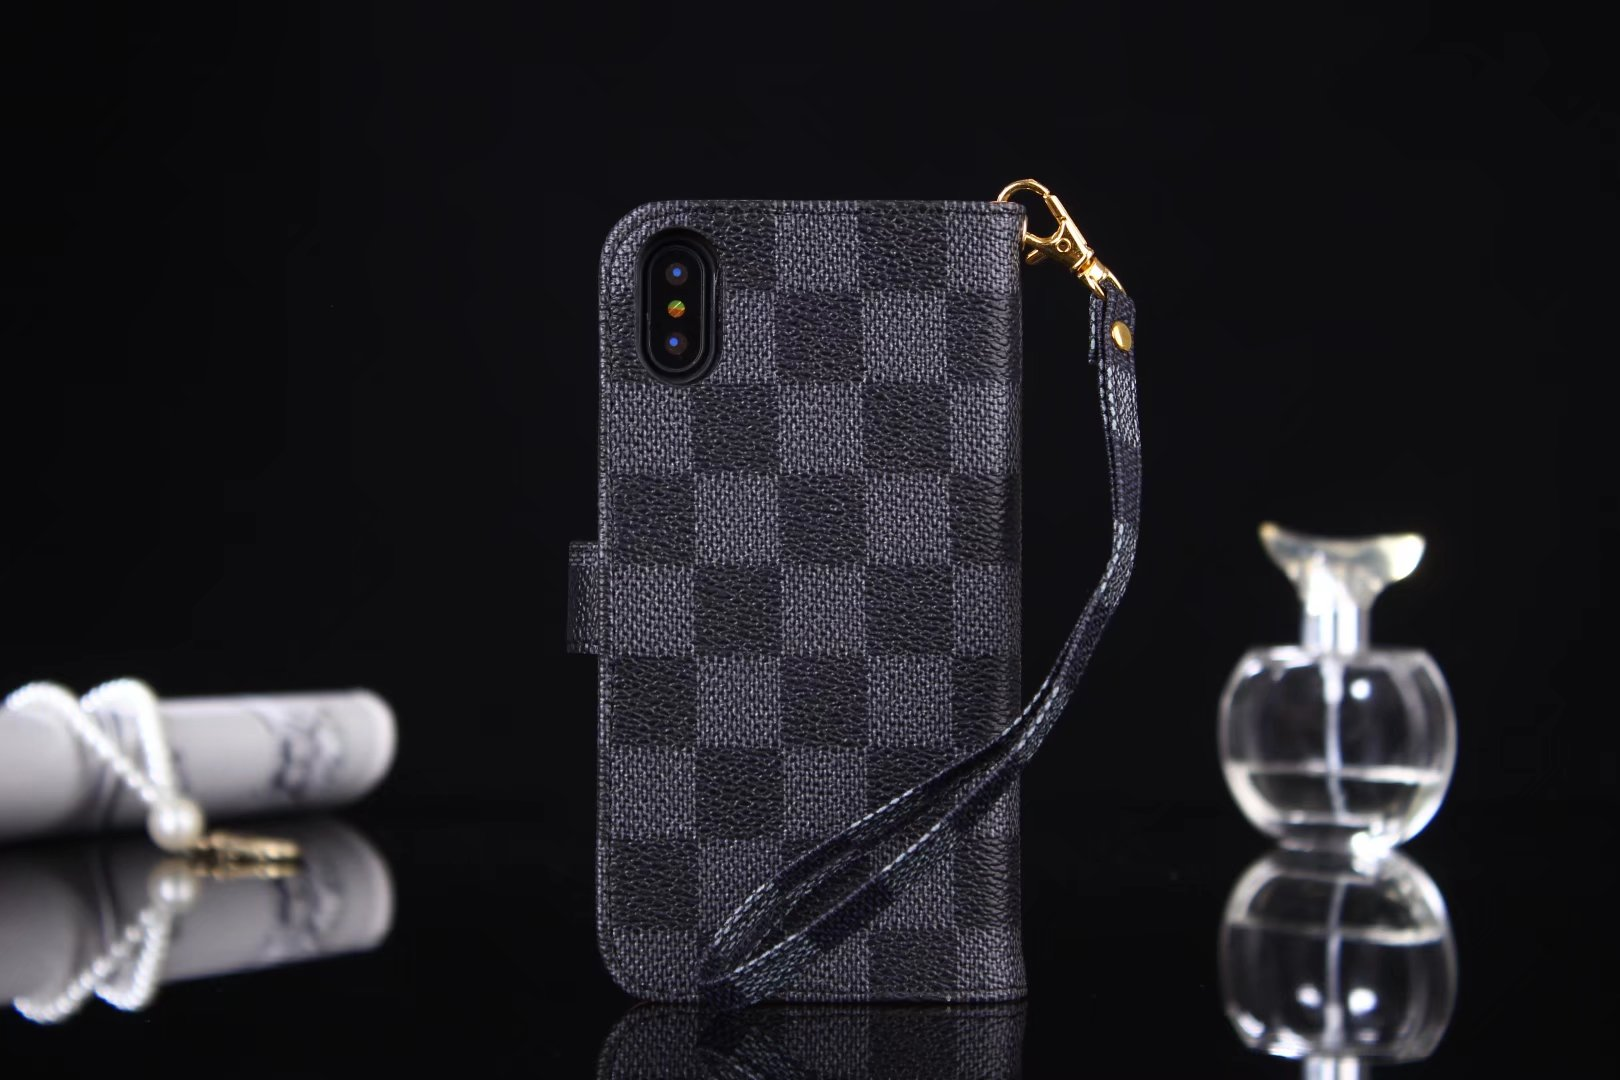 cheap iphone X phone cases apple cases for iphone X Louis Vuitton iPhone X case mobile cases mofi iphone iphone 6 s cases iphone four cases x scene juice pack